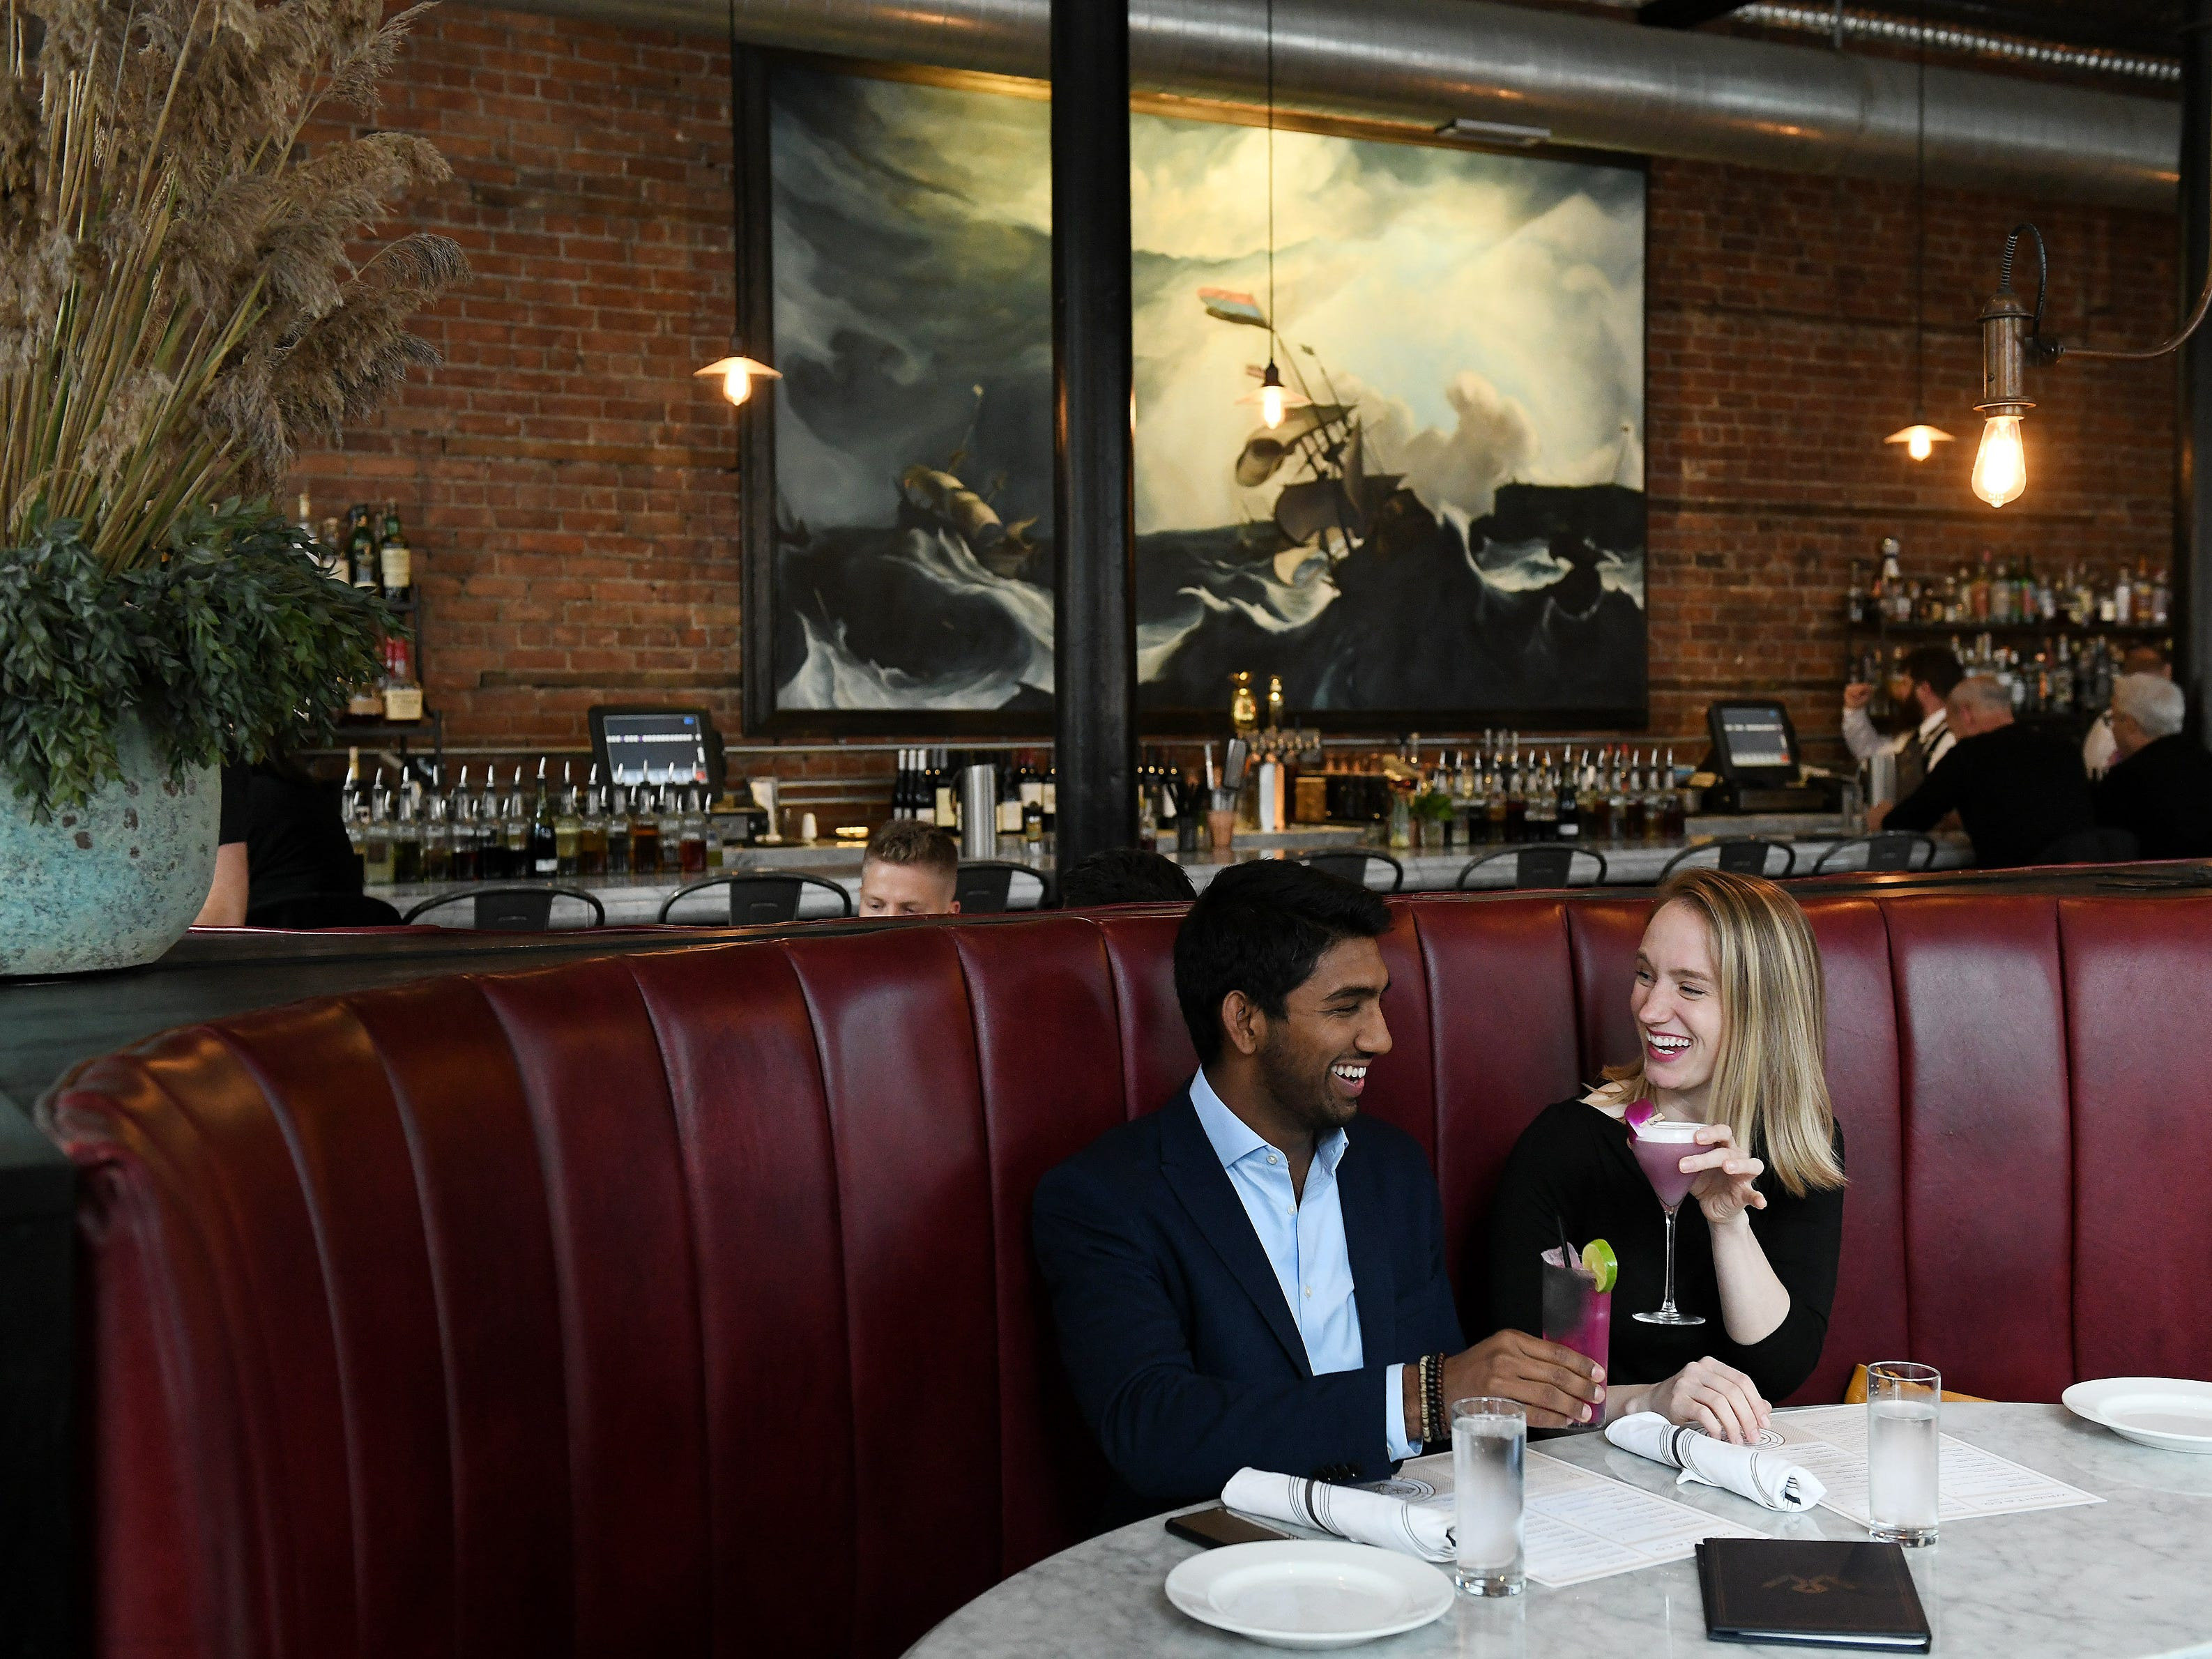 Sweethearts Julia Dart and Shiv Ganganithi cheers each other celebrating six years of being together with a special evening at Wright & Compnay in Detroit on Oct 11, 2018.